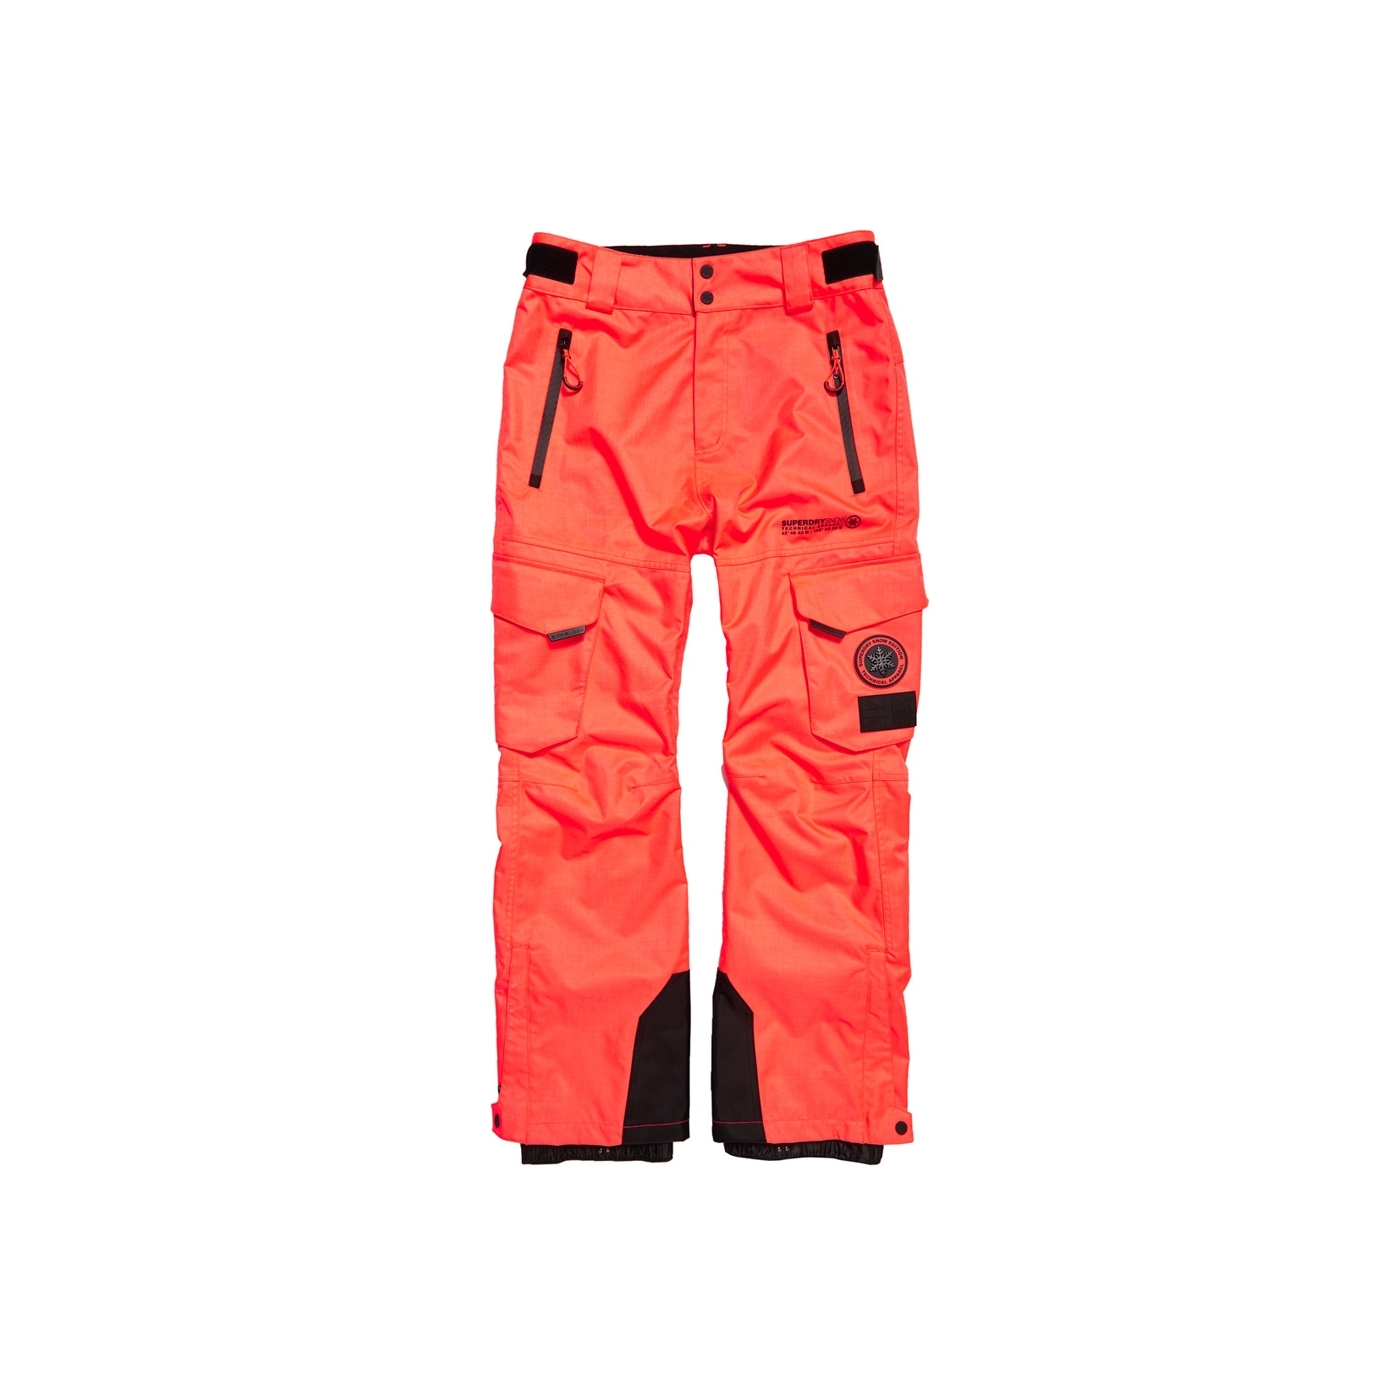 ad7e81c8292af Pantalon De Ski Superdry Snow Pant Hyper Orange